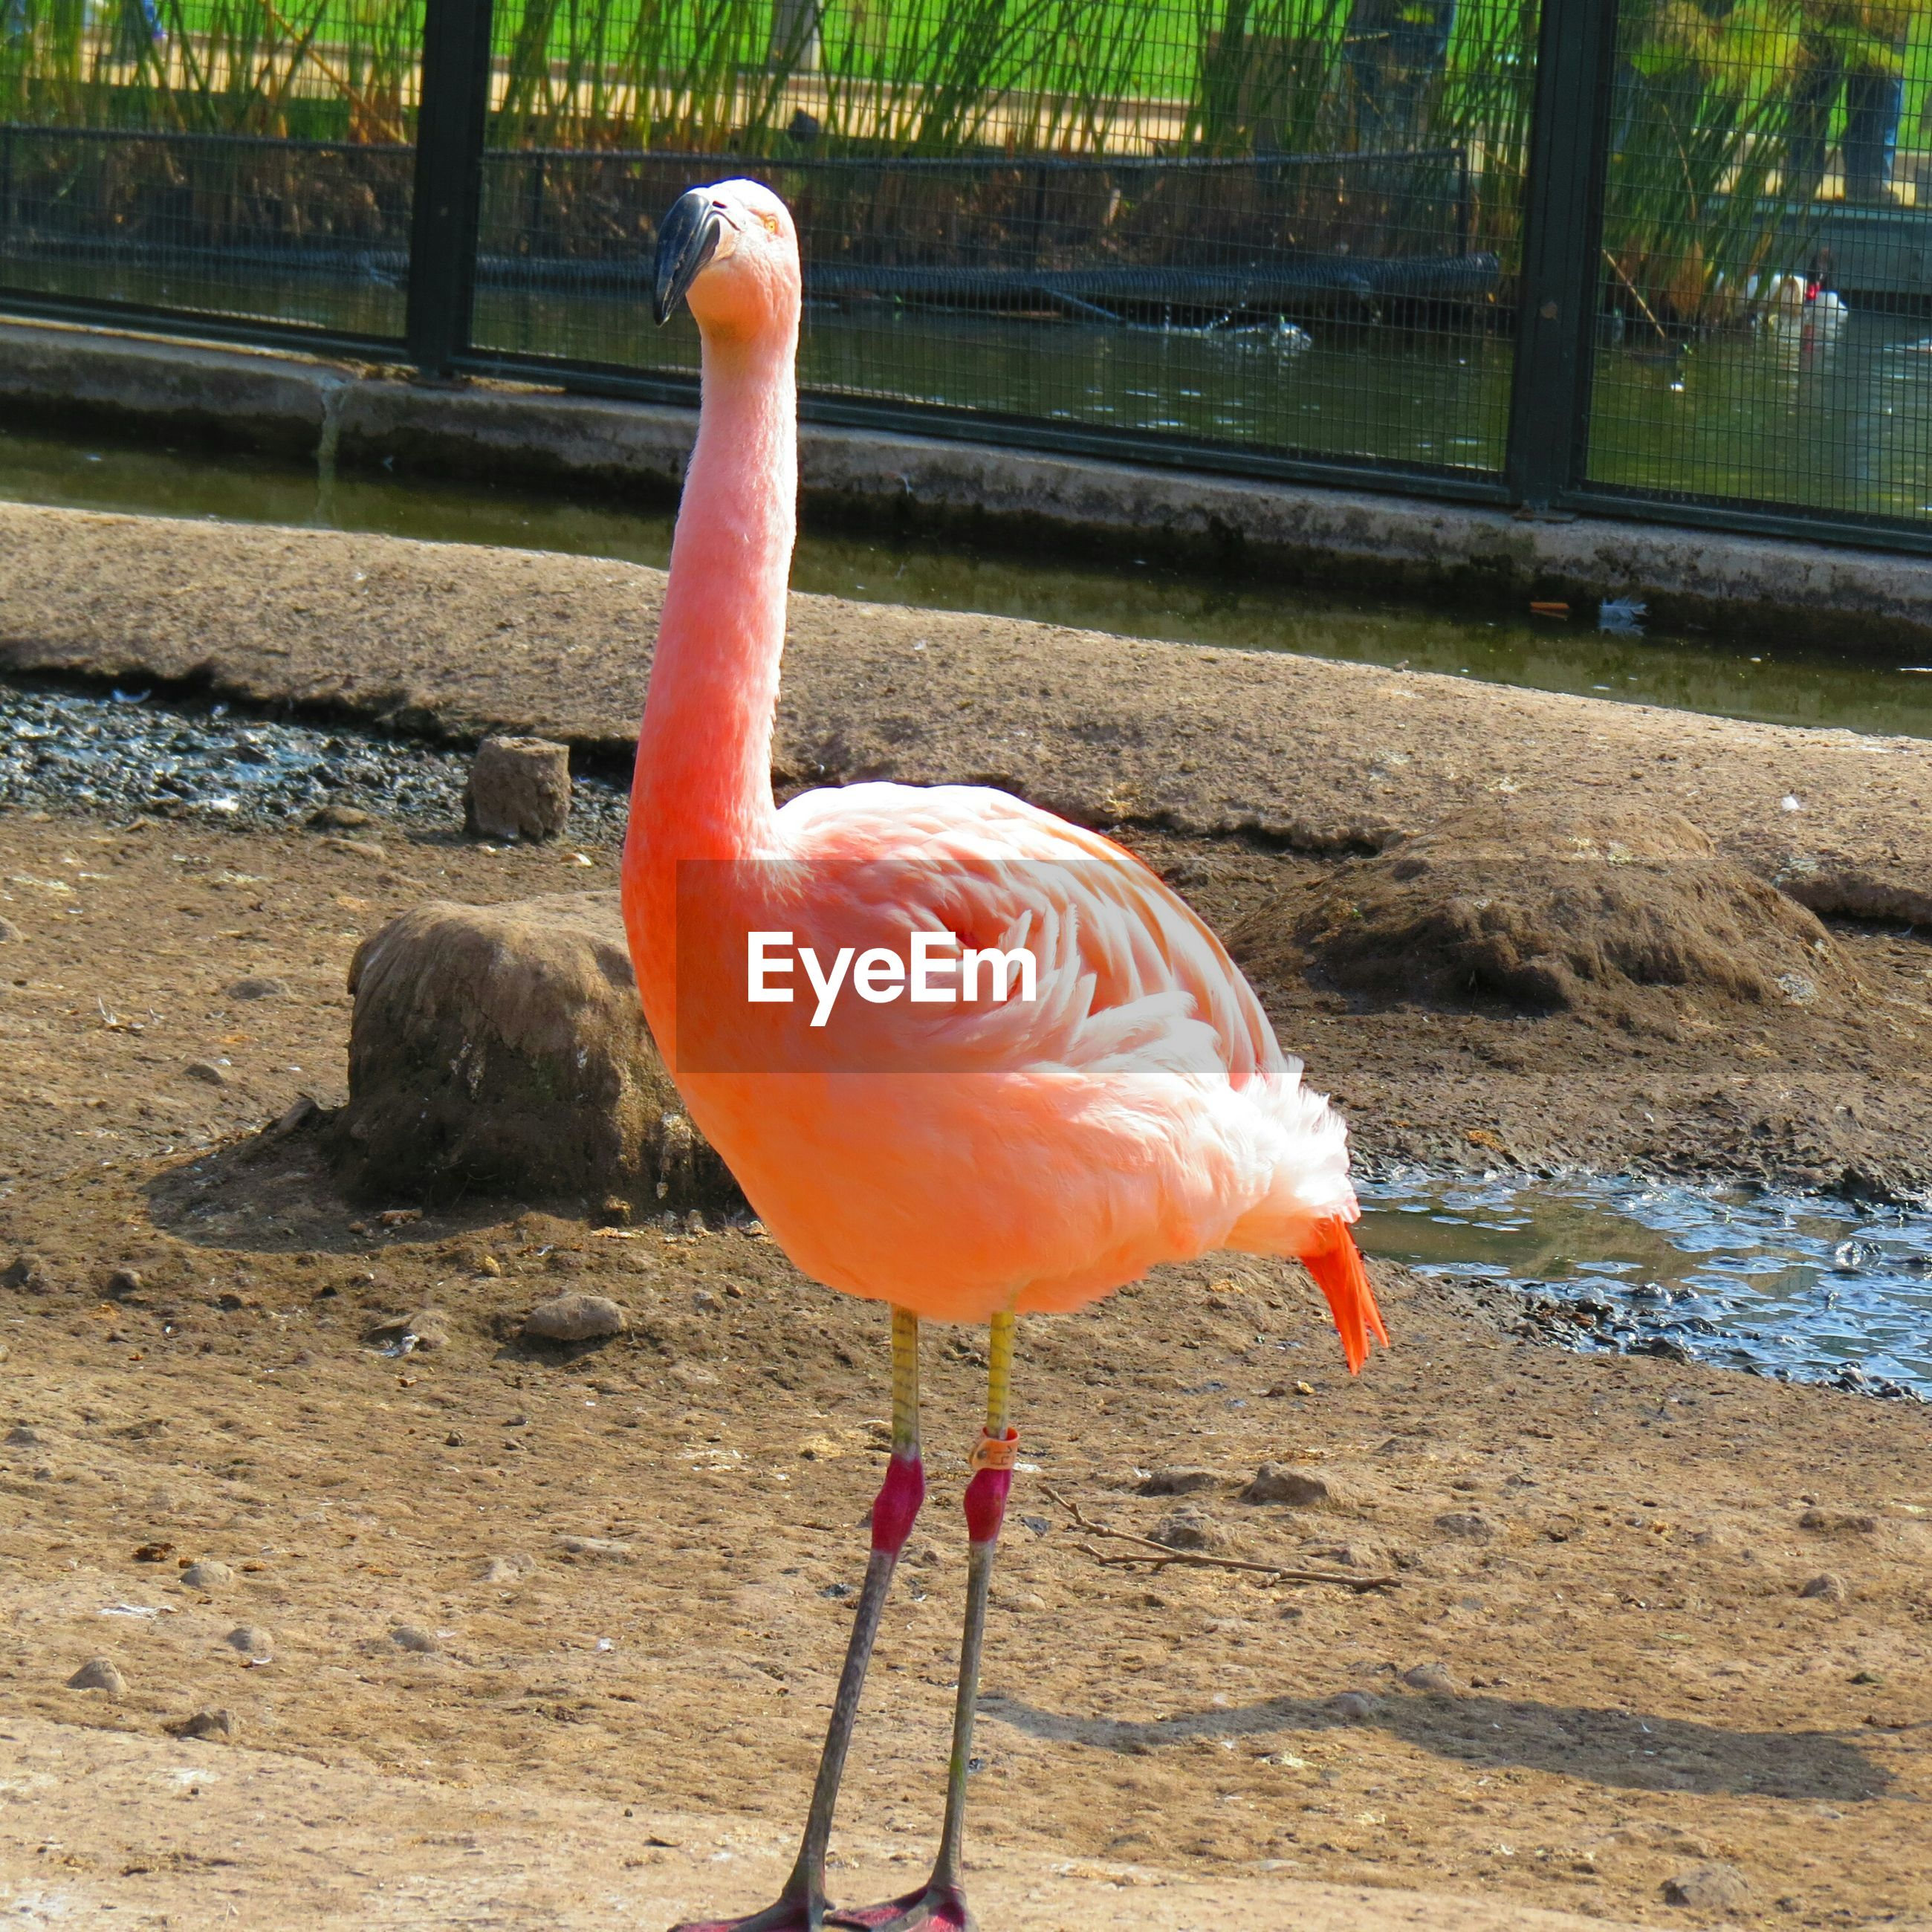 bird, animal themes, close-up, orange color, wildlife, animals in the wild, outdoors, focus on foreground, day, sunlight, flamingo, red, no people, nature, one animal, metal, beak, full length, railing, fence